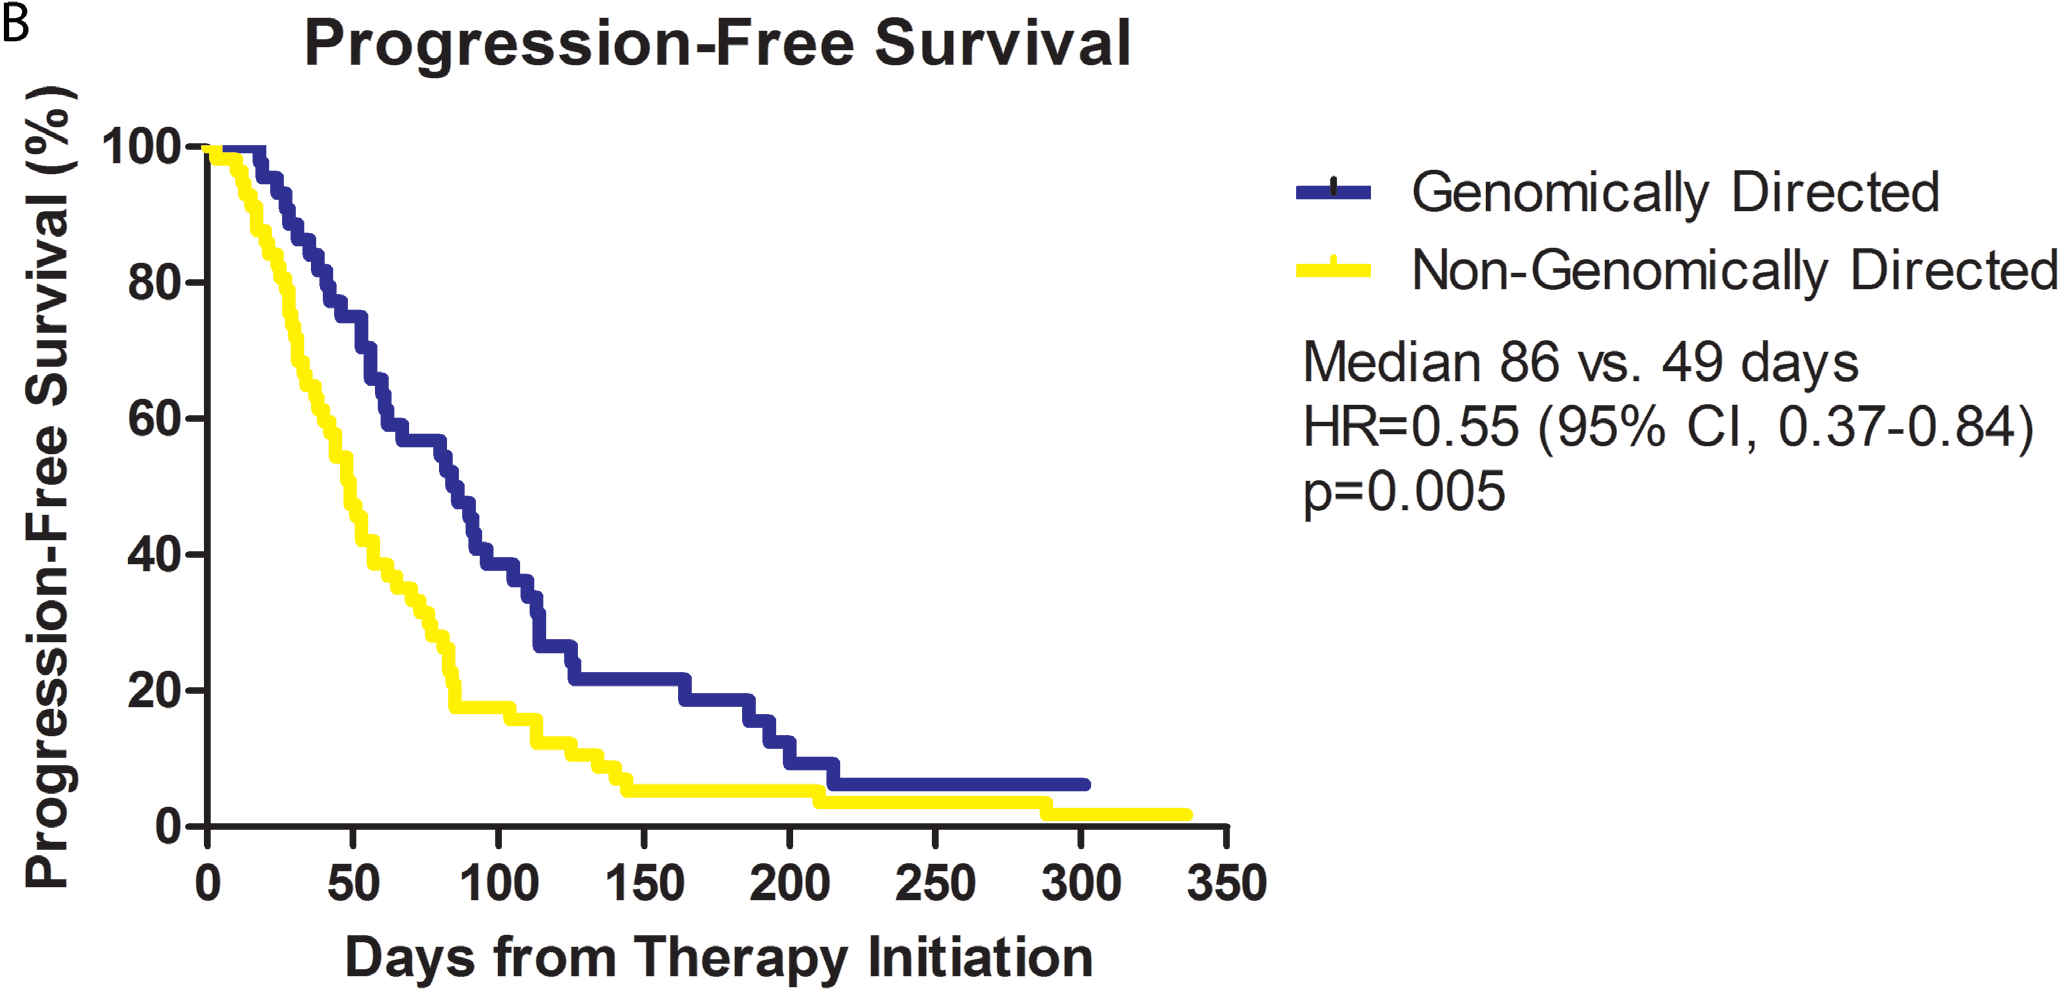 Figure 3b from Radovich et al. (2016) showing progression free survival benefit for PCDx